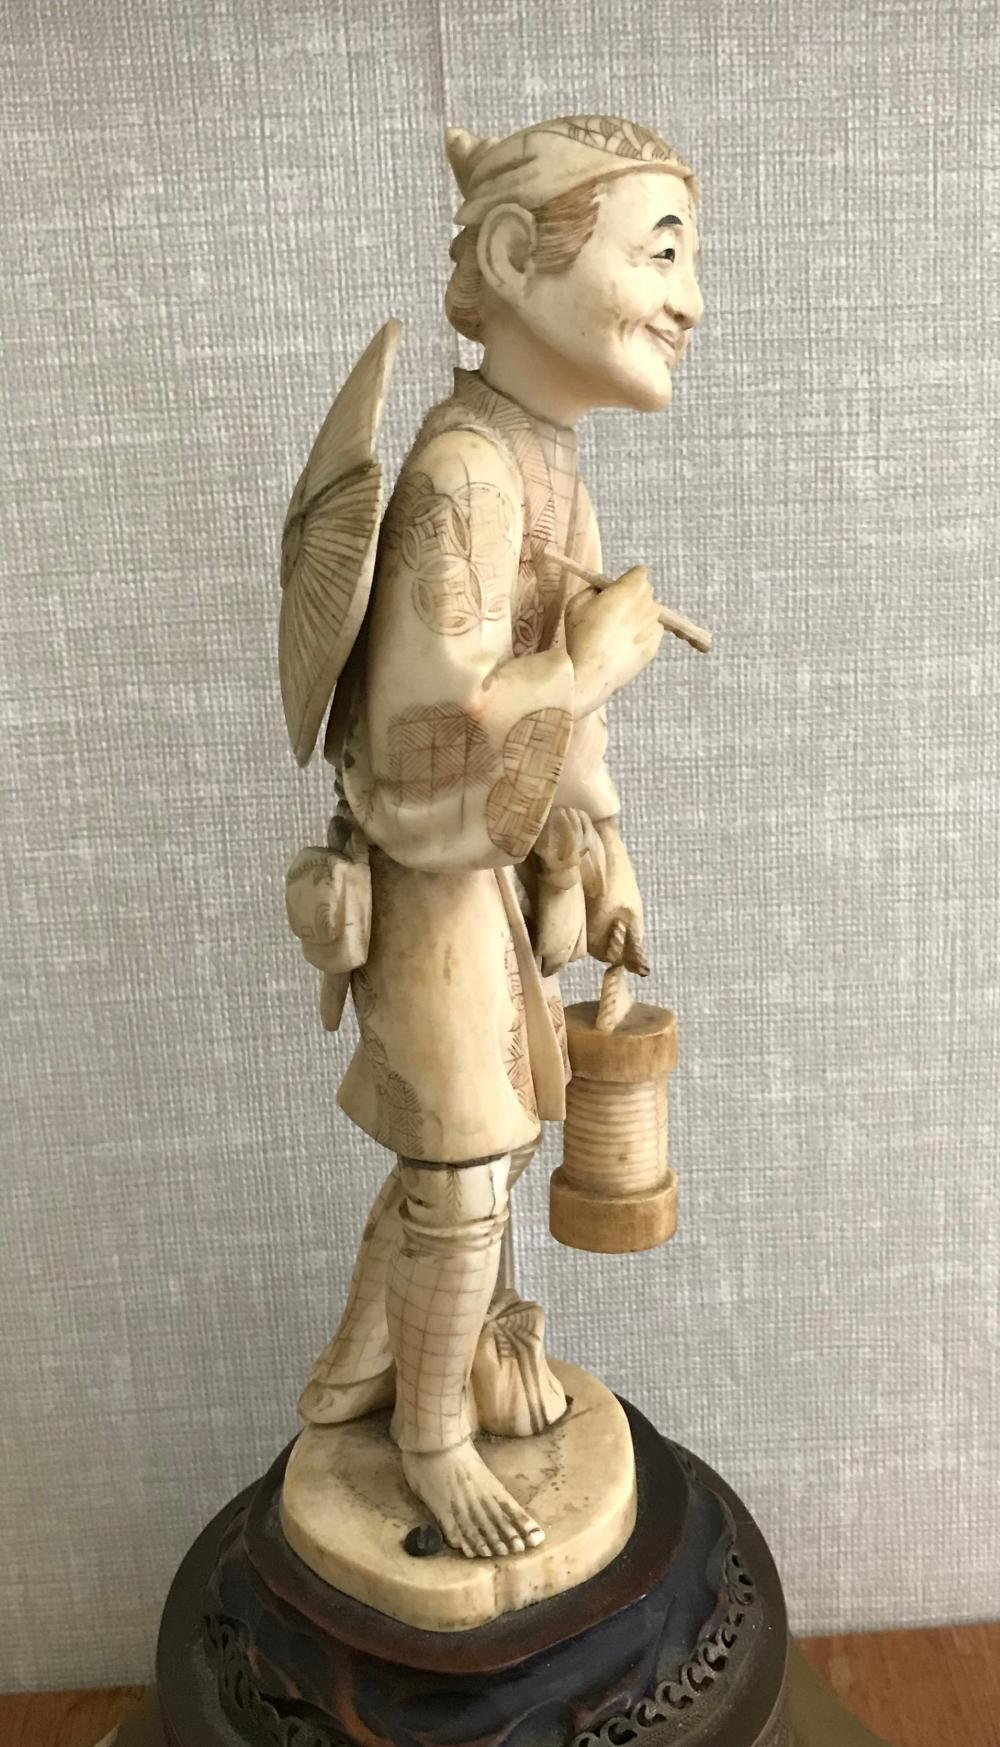 Antique Japanese Carded Fisher Woman Statue